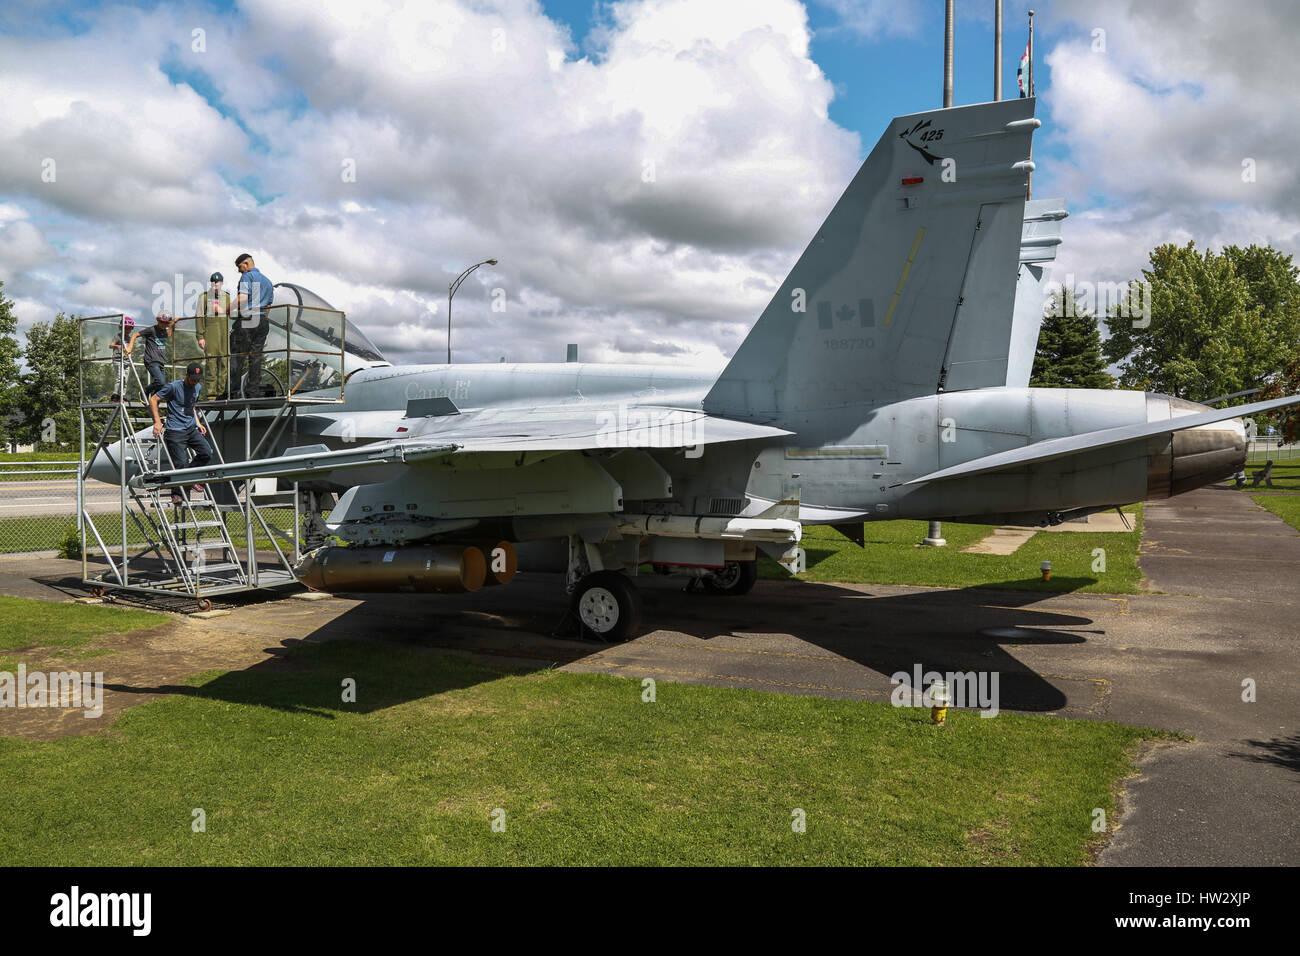 McDonnell Douglas CF-18 Hornet on Display at Air Defence Museum, CFB Bagotville, Saguenay, QC, Canada - Stock Image